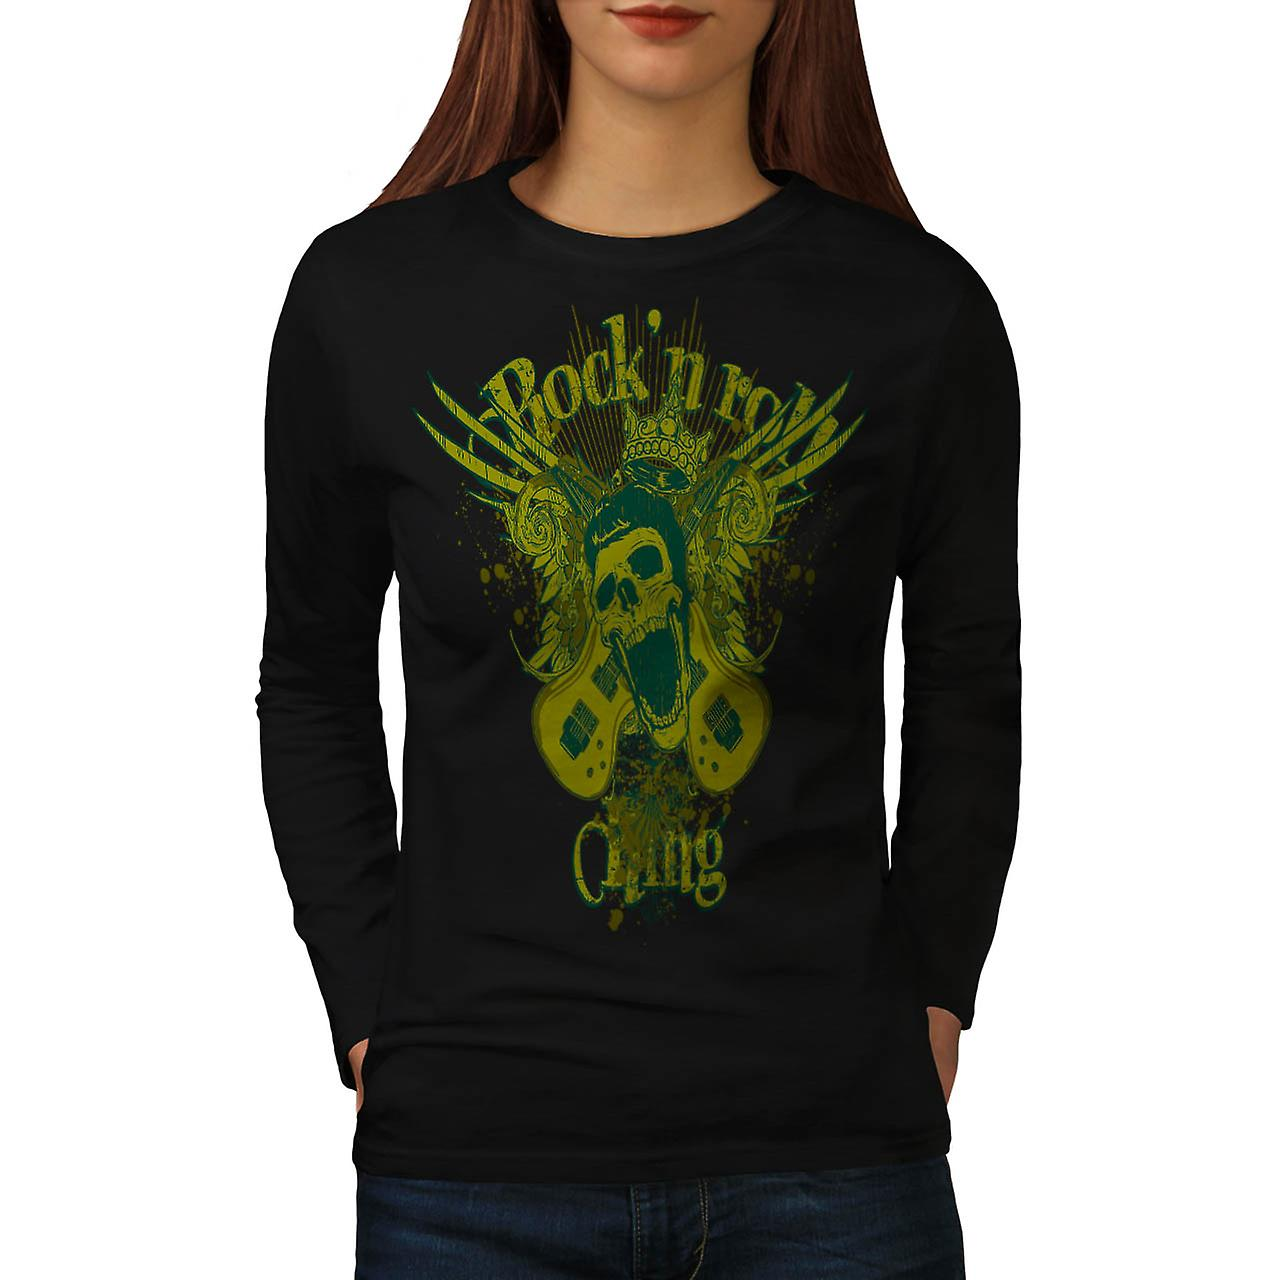 Donna re del rock and Roll chitarra Skull Black t-shirt manica lunga | Wellcoda